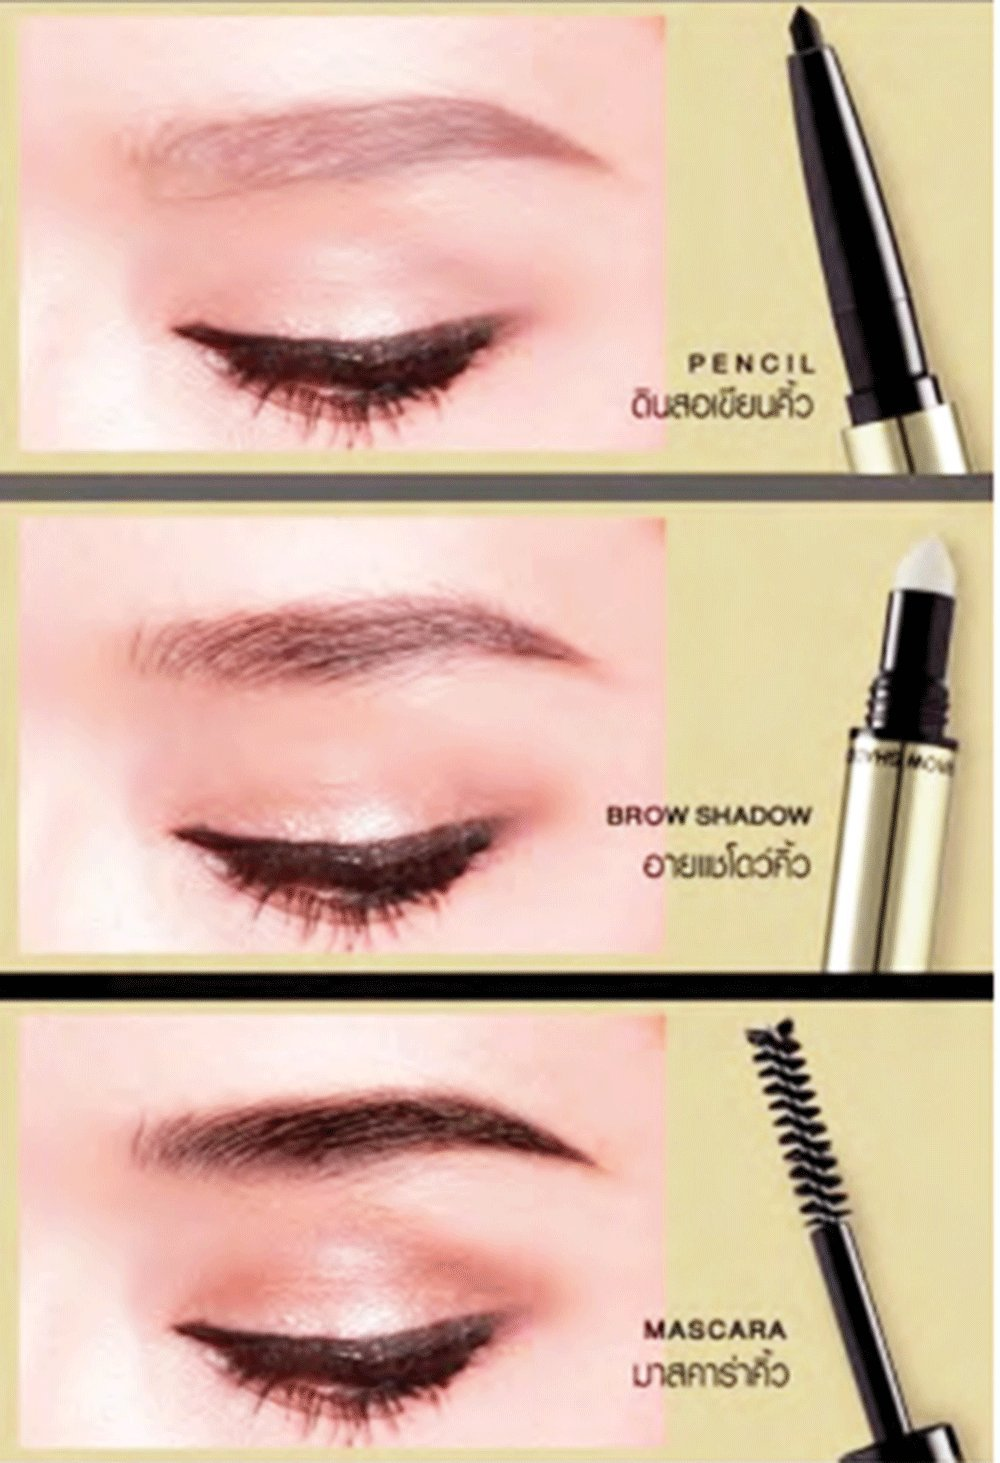 Amazon.com : Mistine 3D Brows Secret Eye Brow Set (3 in 1 Pencil, Shadow, Mascara) (01 Dark brown) : Beauty